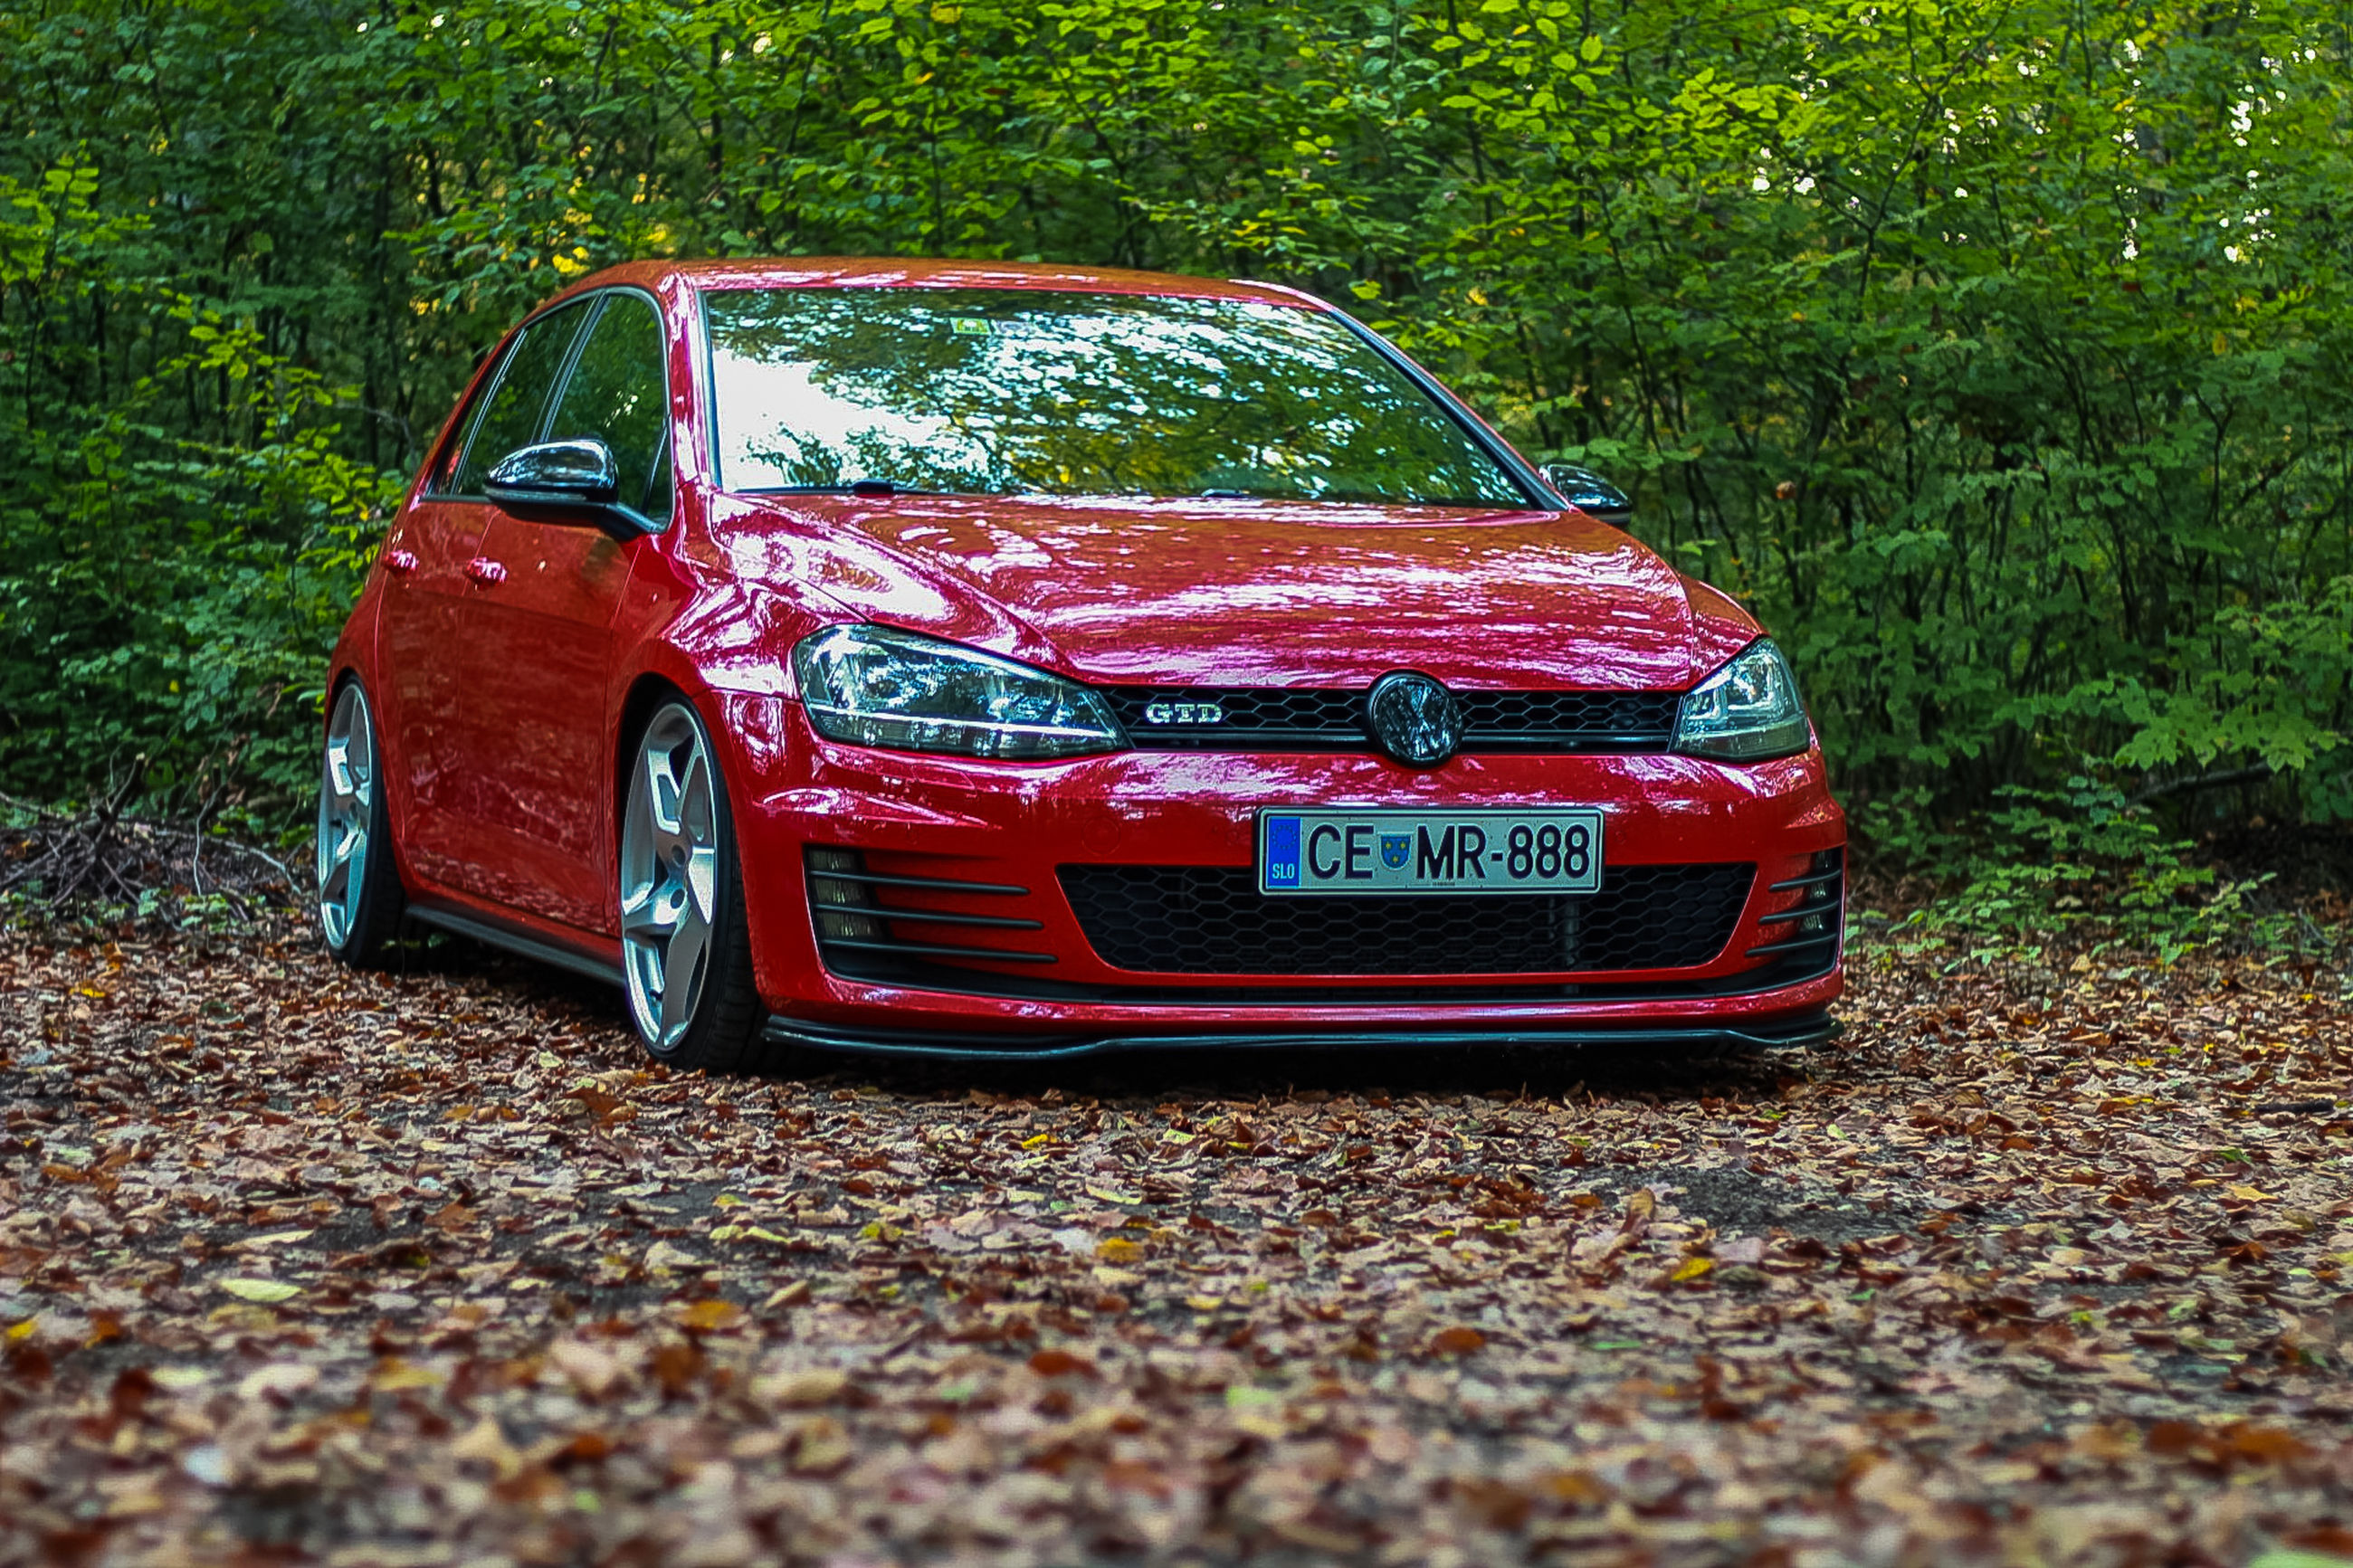 red, mode of transportation, transportation, tree, car, motor vehicle, plant, day, nature, land vehicle, land, no people, plant part, leaf, stationary, outdoors, autumn, forest, growth